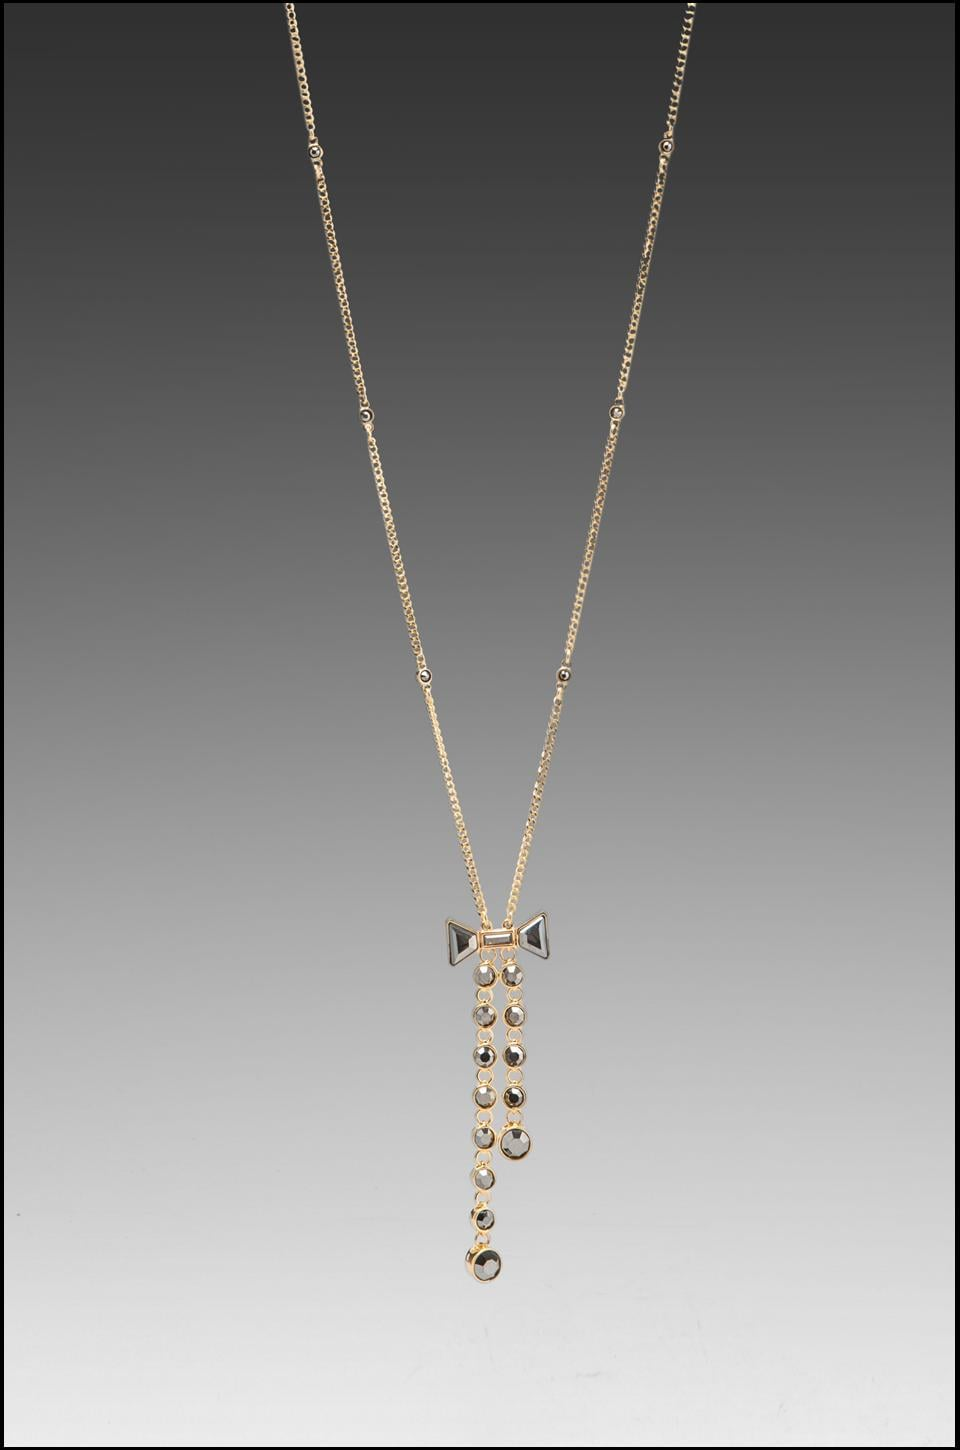 Marc by Marc Jacobs Polka Dot Bow Lariat Necklace in Silver Flare Oro